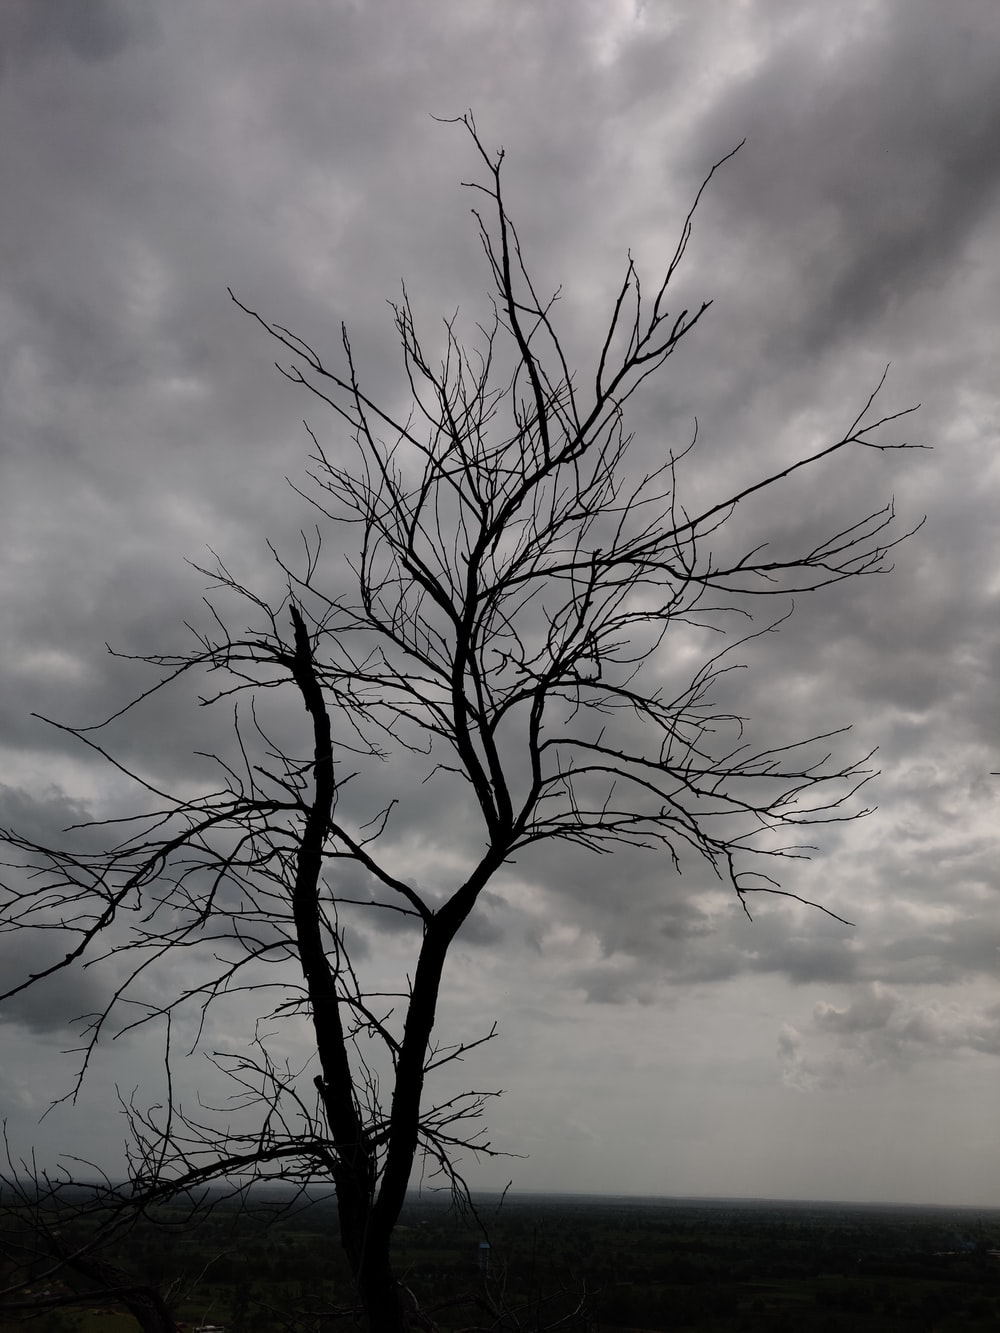 leafless tree under cloudy sky during daytime